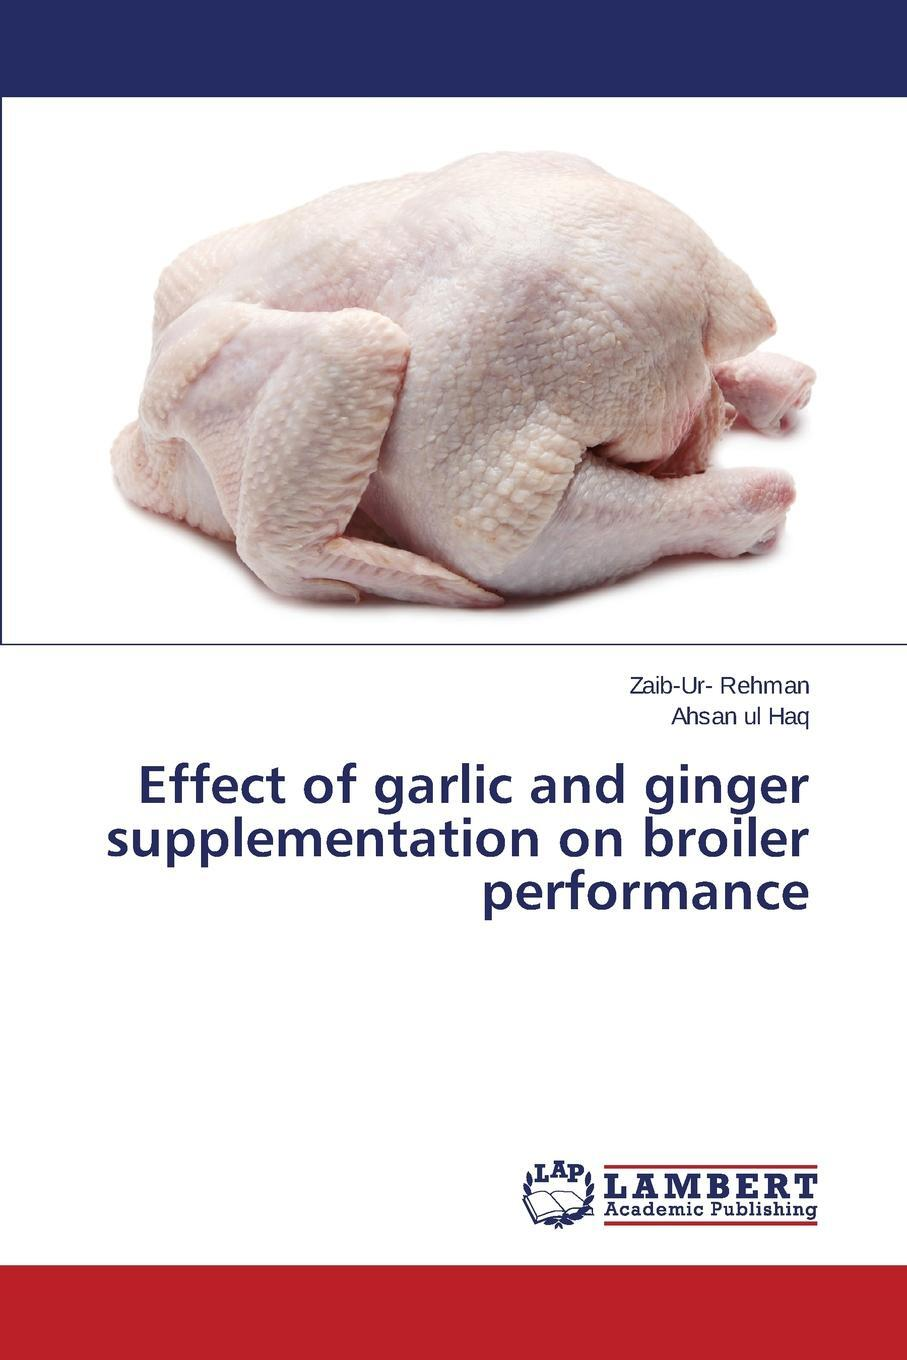 Effect of Garlic and Ginger Supplementation on Broiler Performance